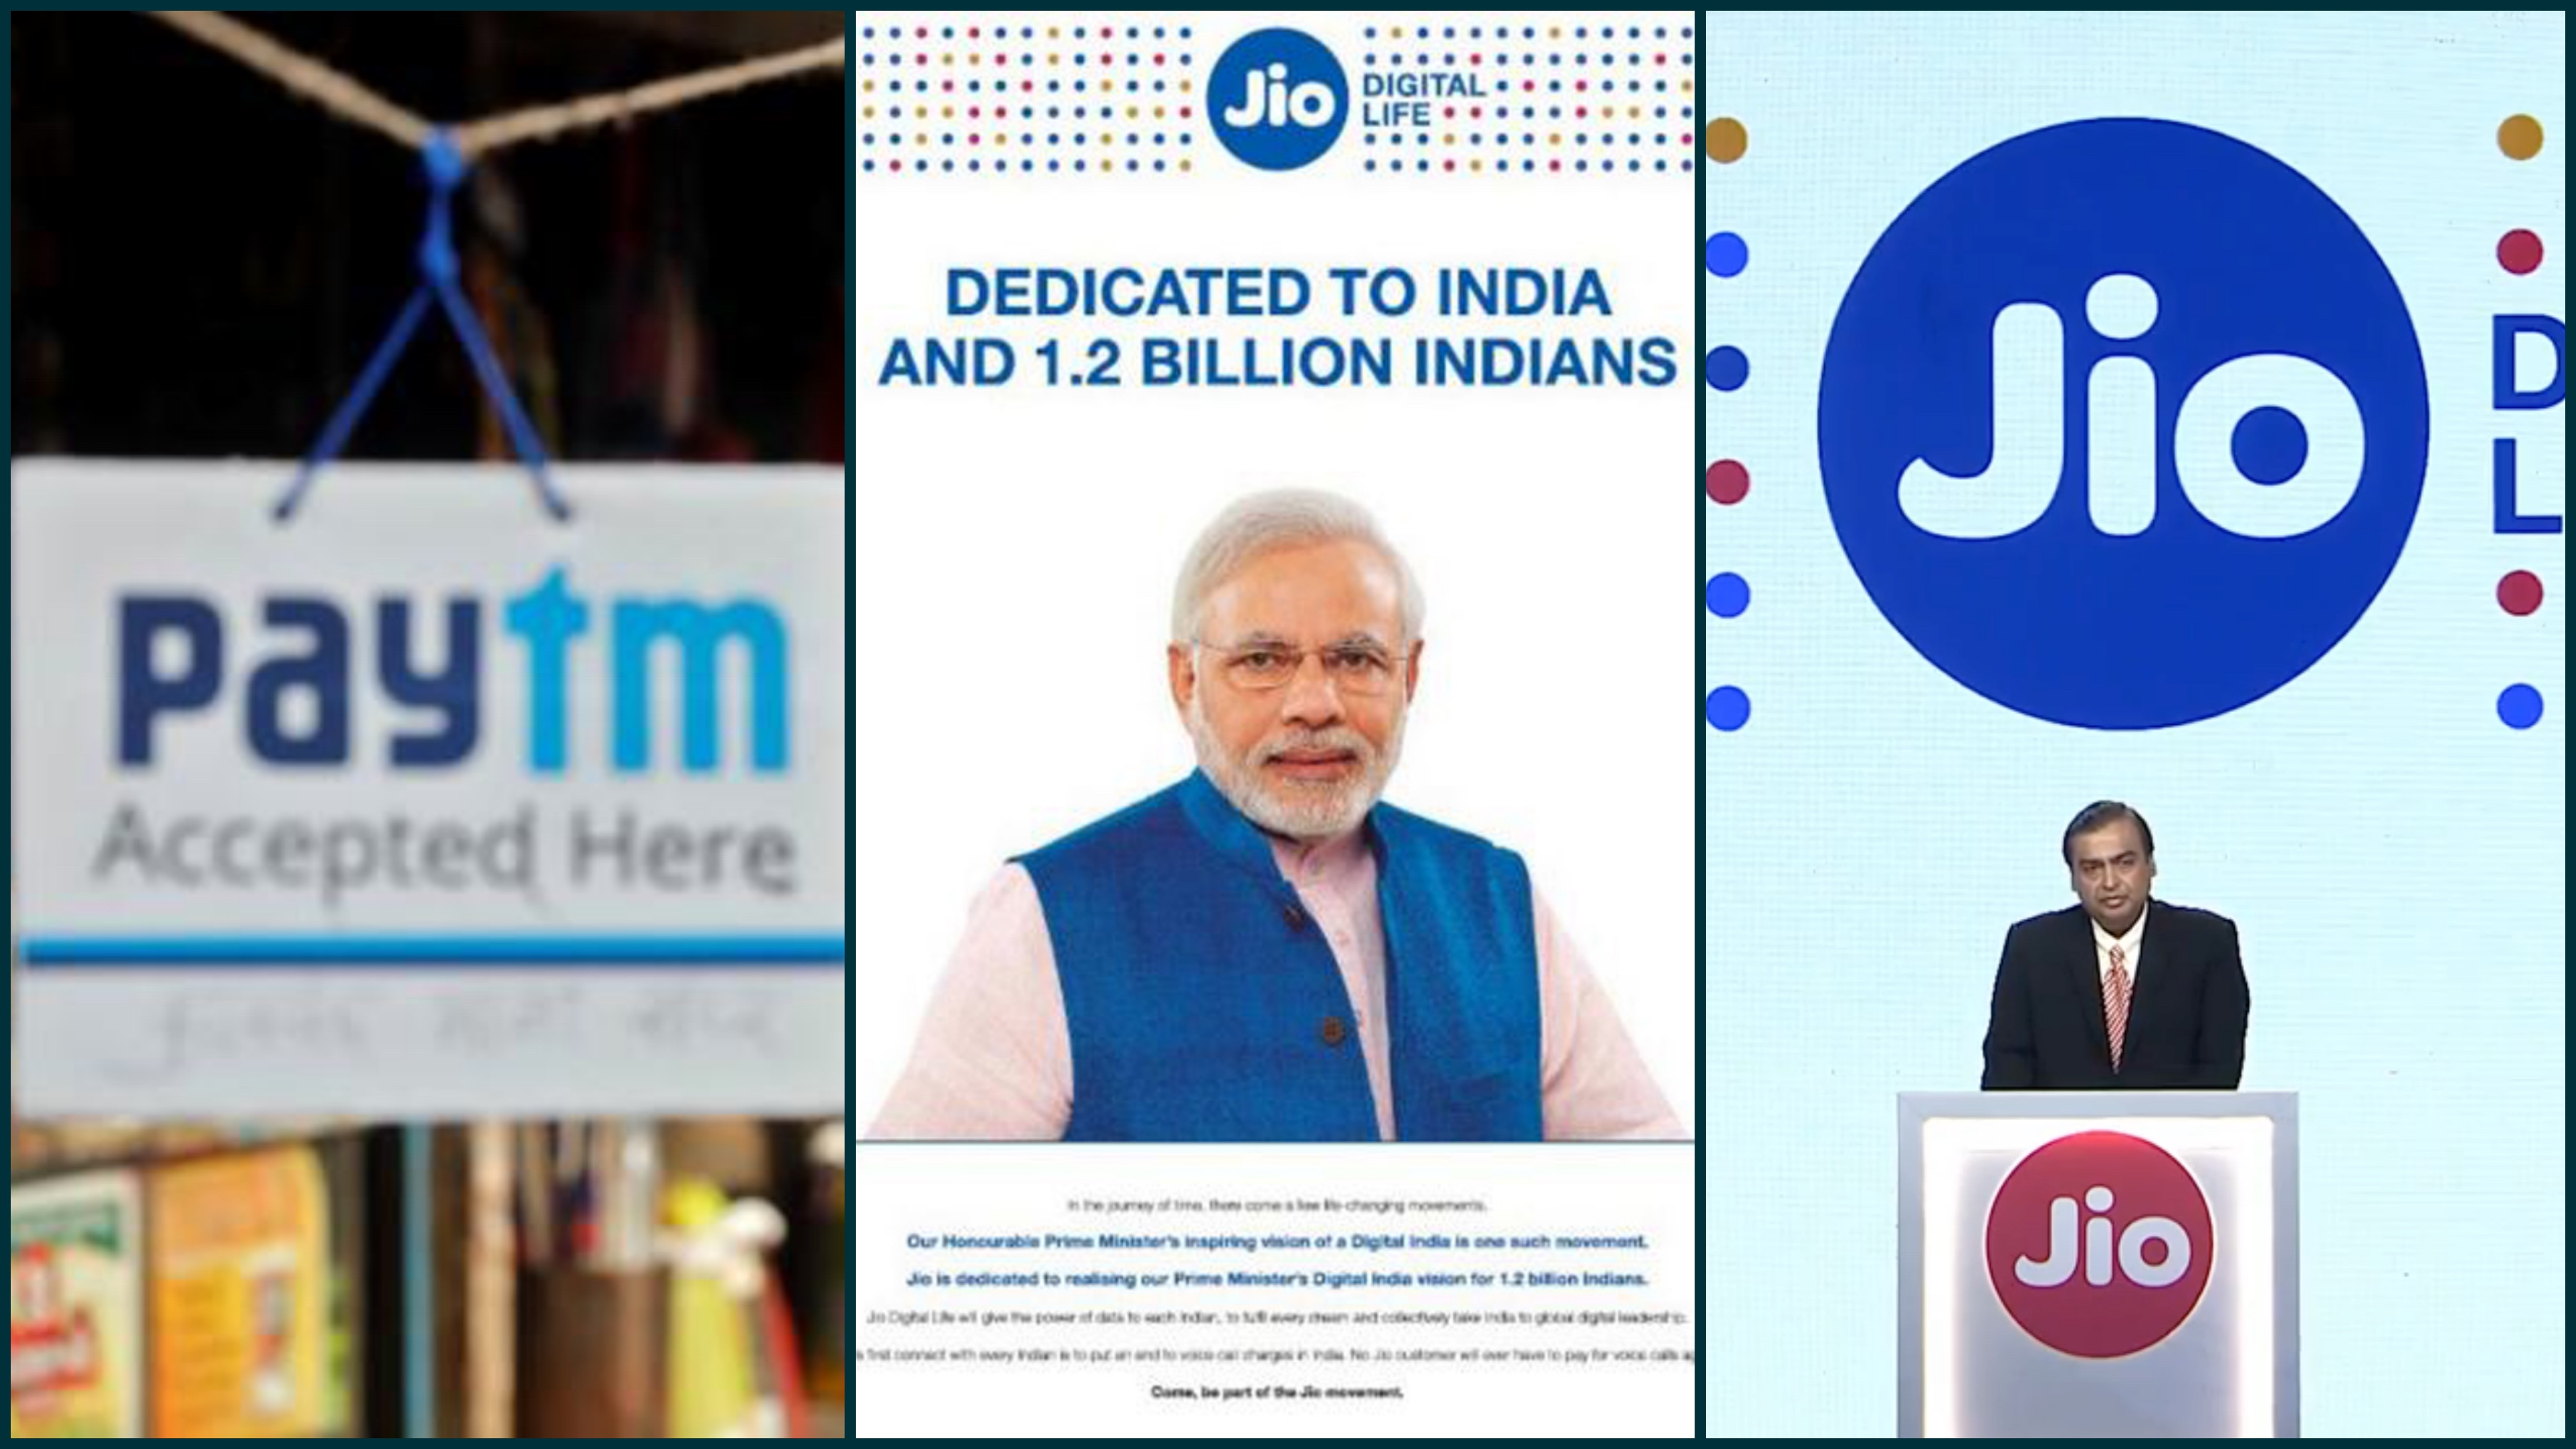 We're Sorry, Say Paytm and Reliance Jio on Modi Advertisements